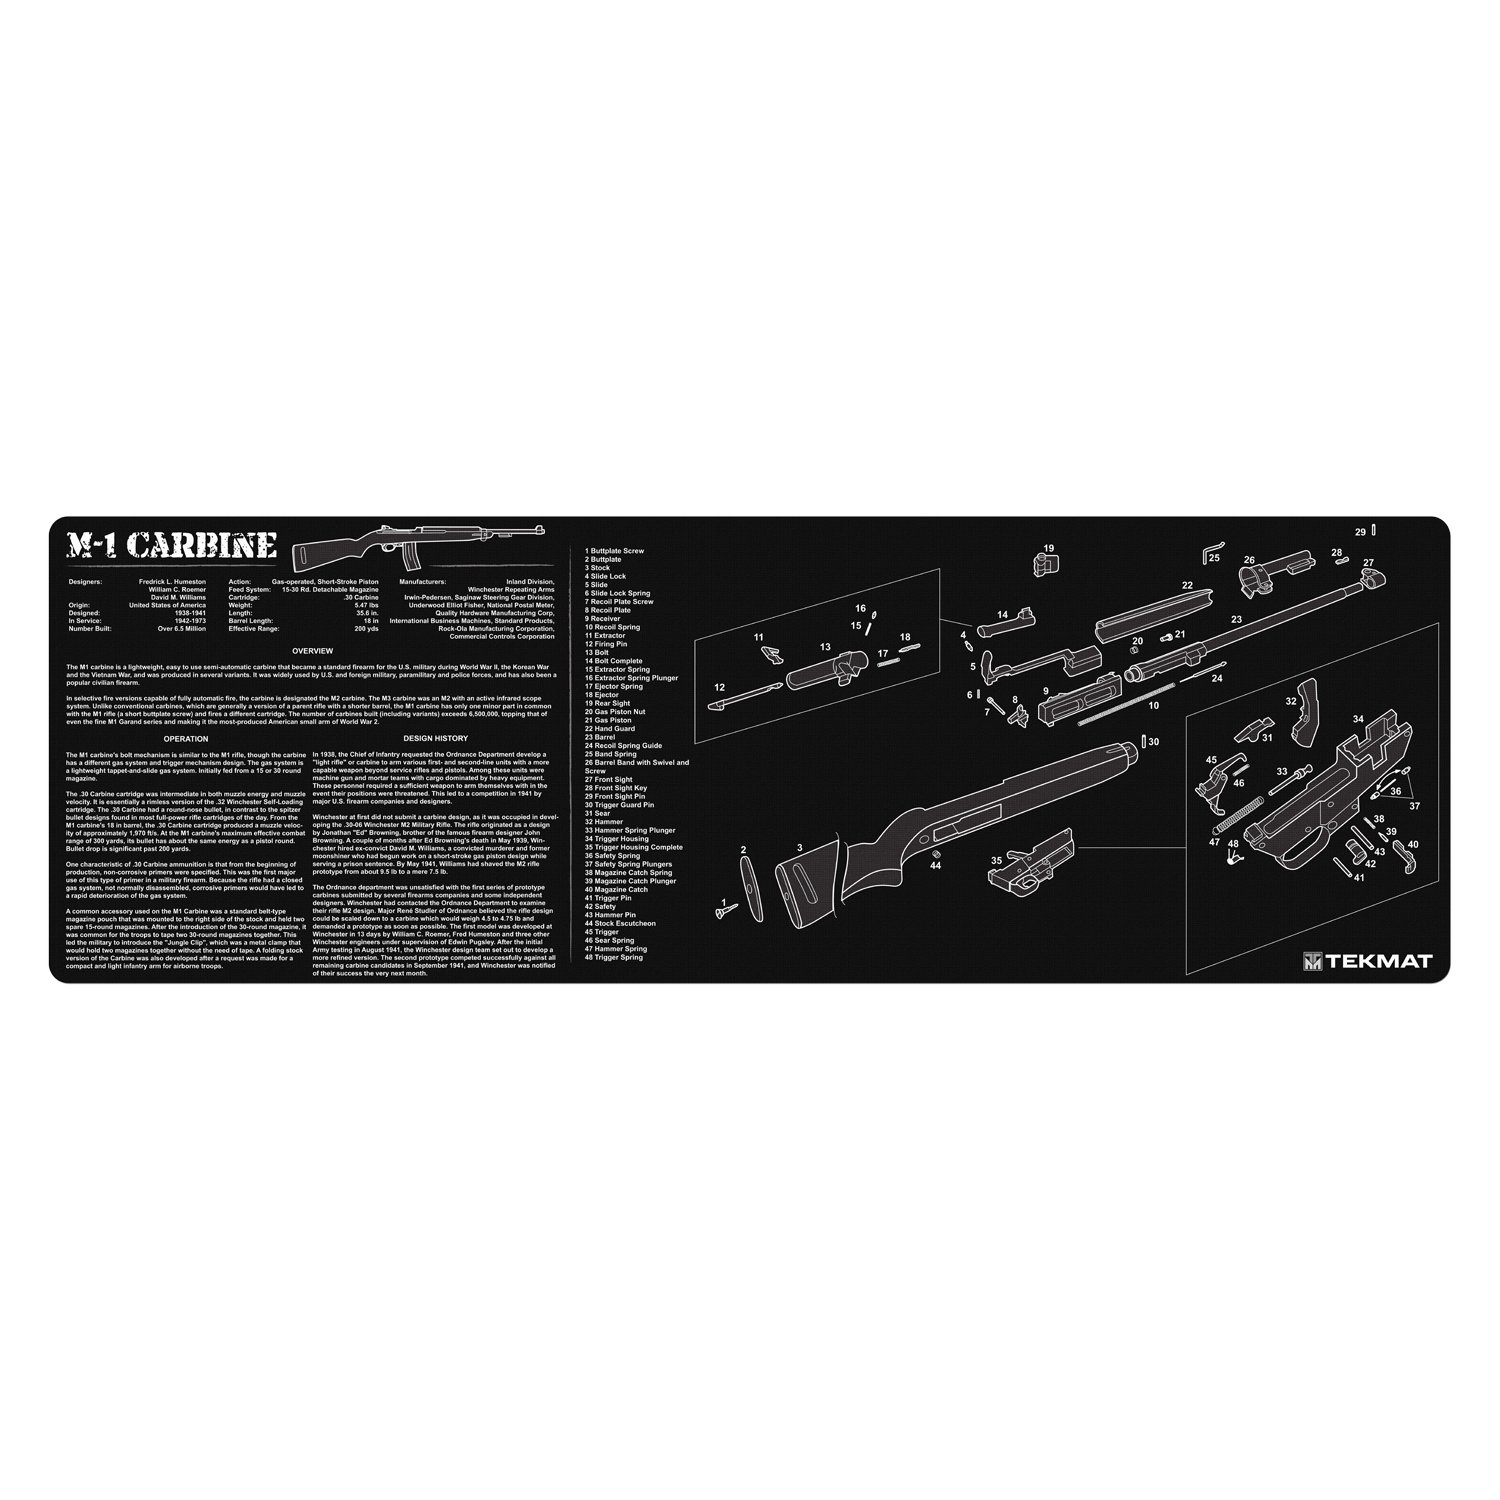 TekMat M1 Carbine Cleaning Mat / 12 x 36 Thick, Durable, Waterproof / Long Gun Cleaning Mat with Parts Diagram and Instructions / Armorers Bench Mat / Black by TekMat (Image #1)